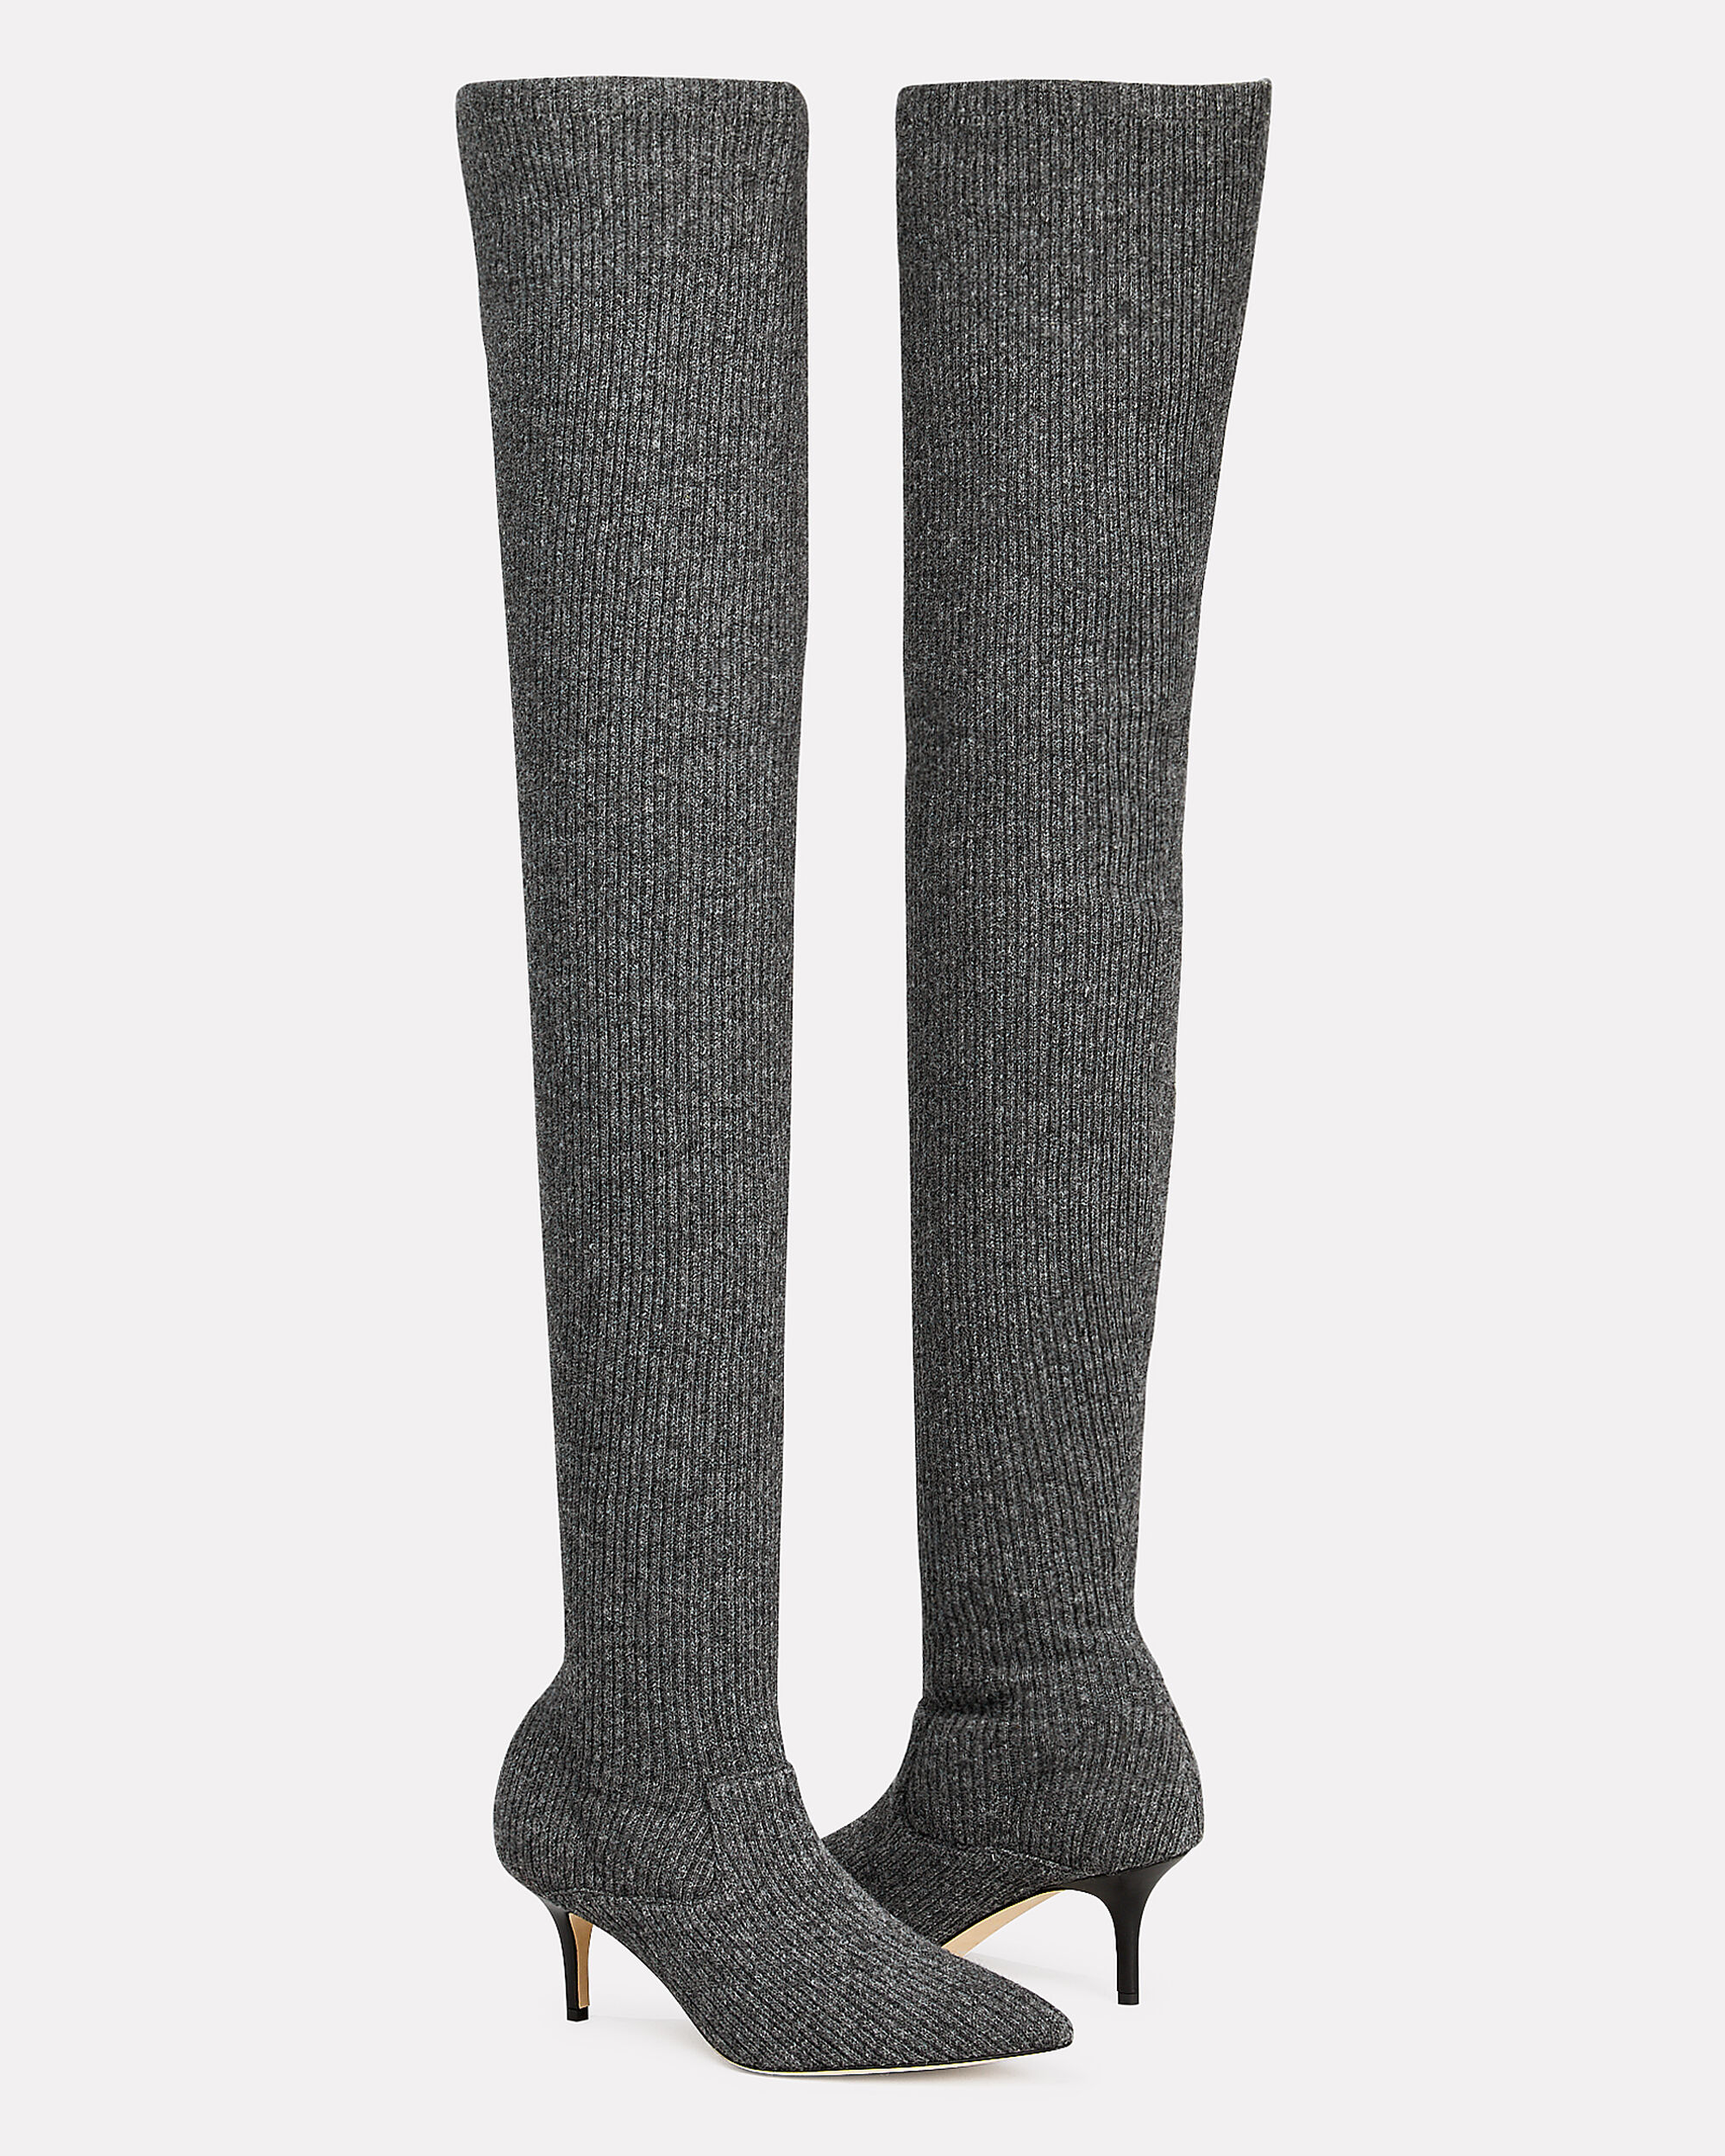 Over-The-Knee Sock Boots, CHARCOAL, hi-res